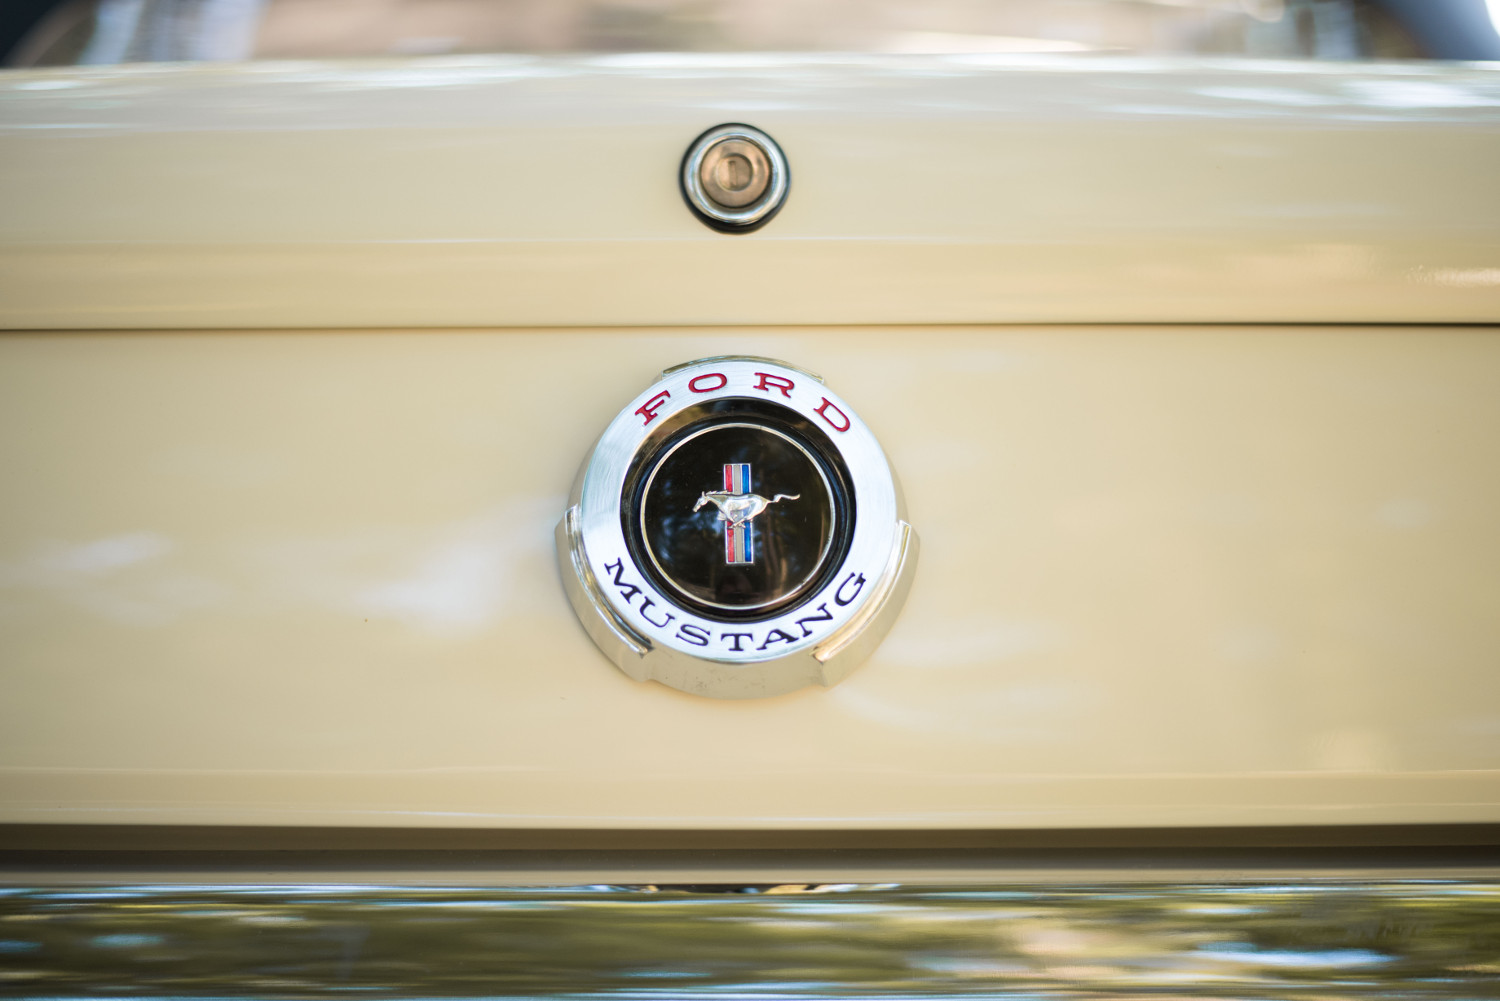 1965 Ford Mustang badge